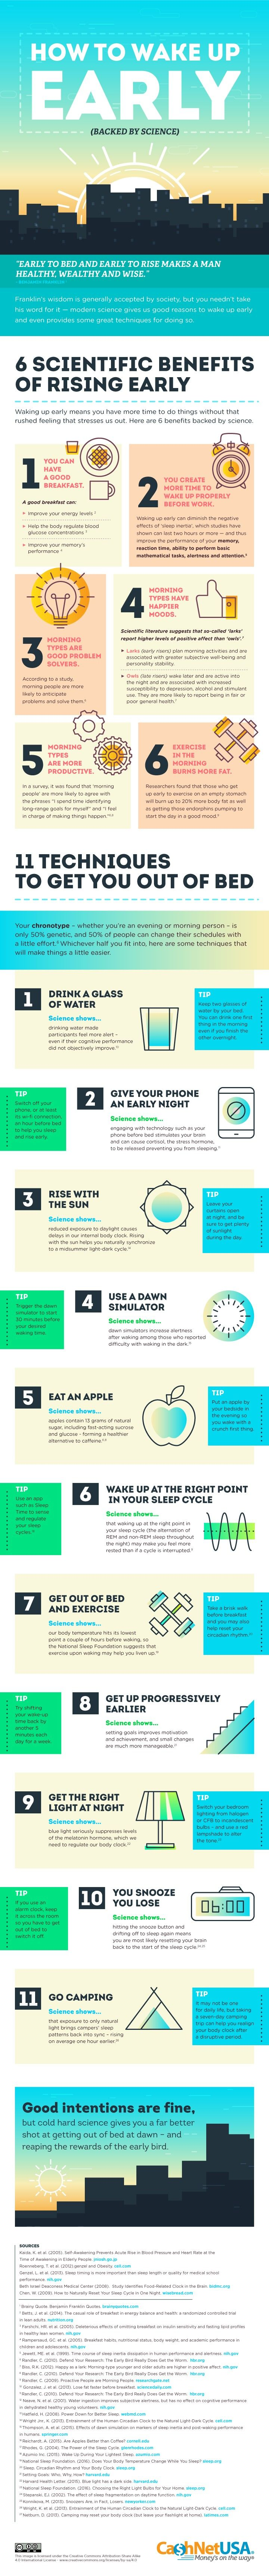 21 Charts to Help You Build a Better Morning Routine How to Wake Up Early (Backed by Science): This graphic offers up 6 benefits of getting up early, and then 11 ways to get yourself out of bed in the morning a little bit sooner. Miracle Morning, Mental Training, Getting Up Early, Morning Motivation, Gym Motivation, How To Wake Up Early, Sleep Early, Happy Quotes, Better Life